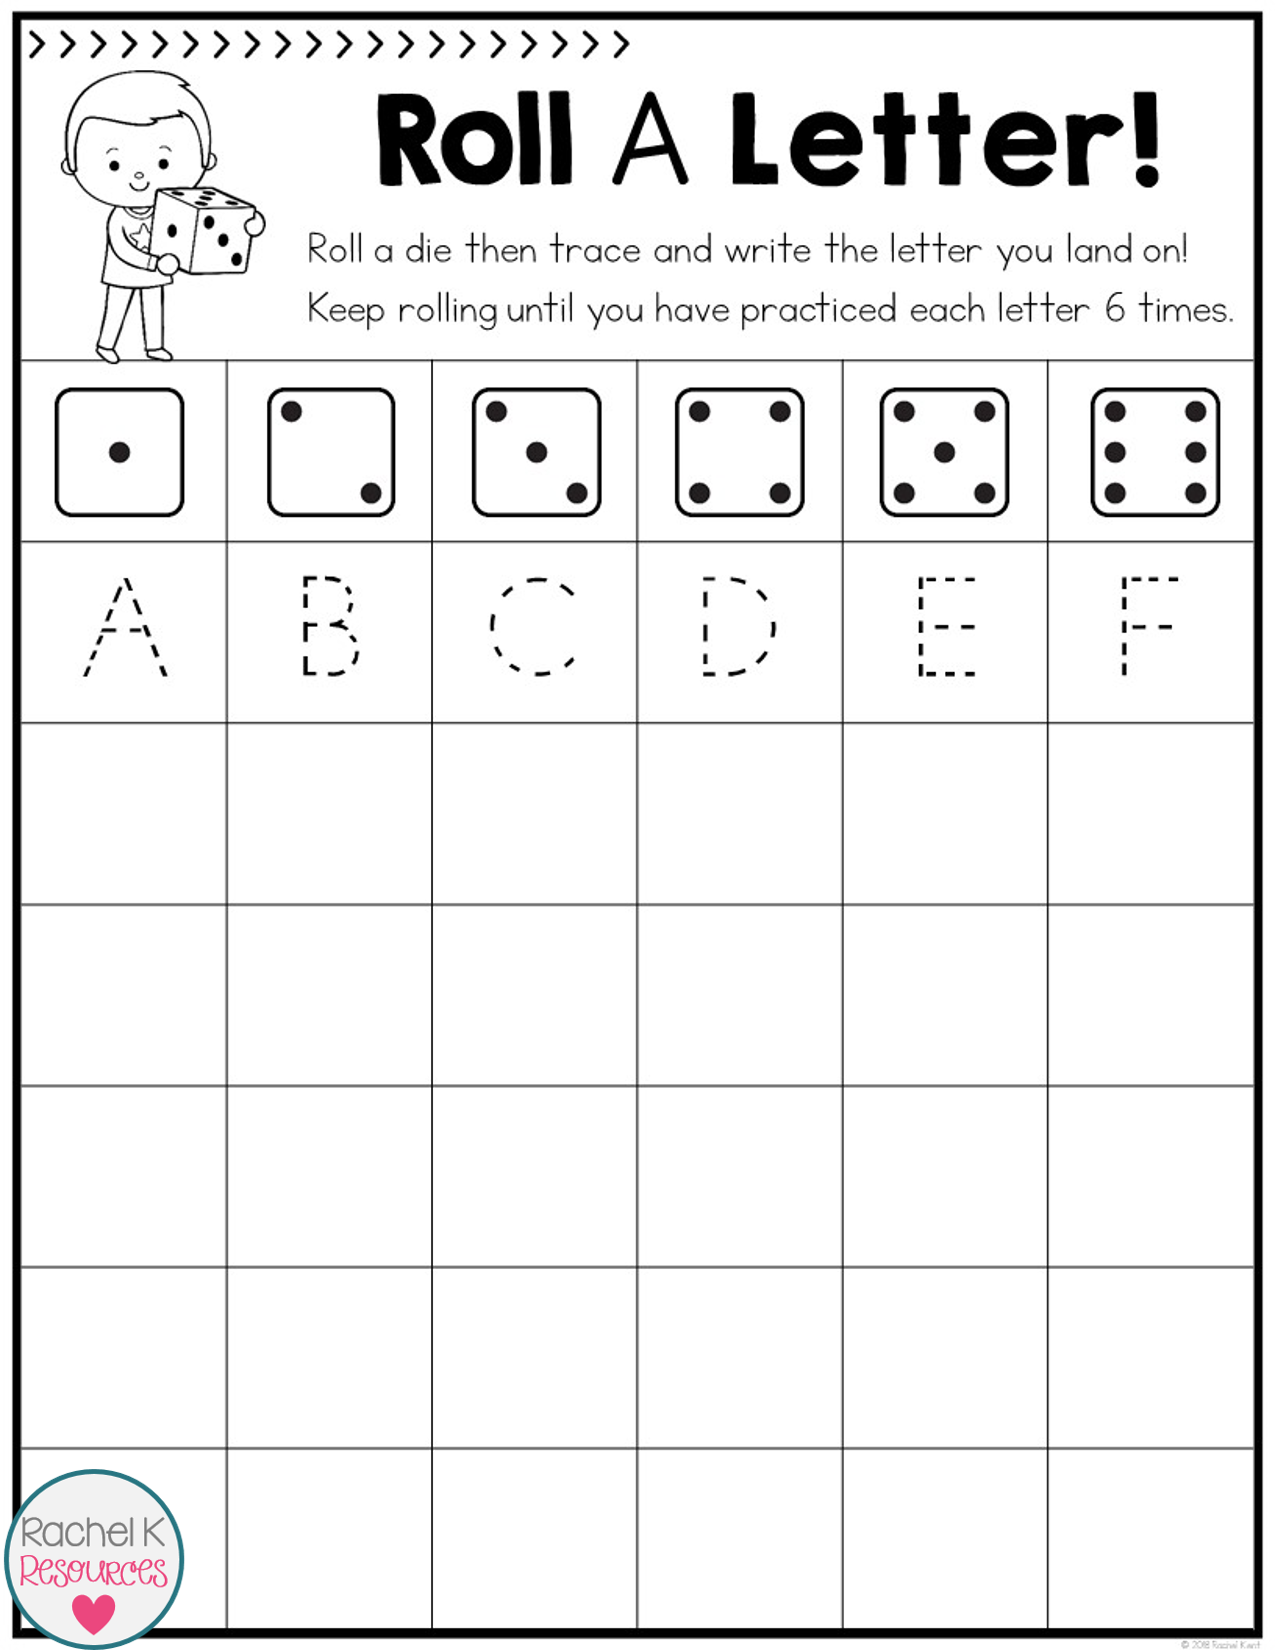 Roll A Letter - Handwriting Practice | Handwriting And Penmanship ...